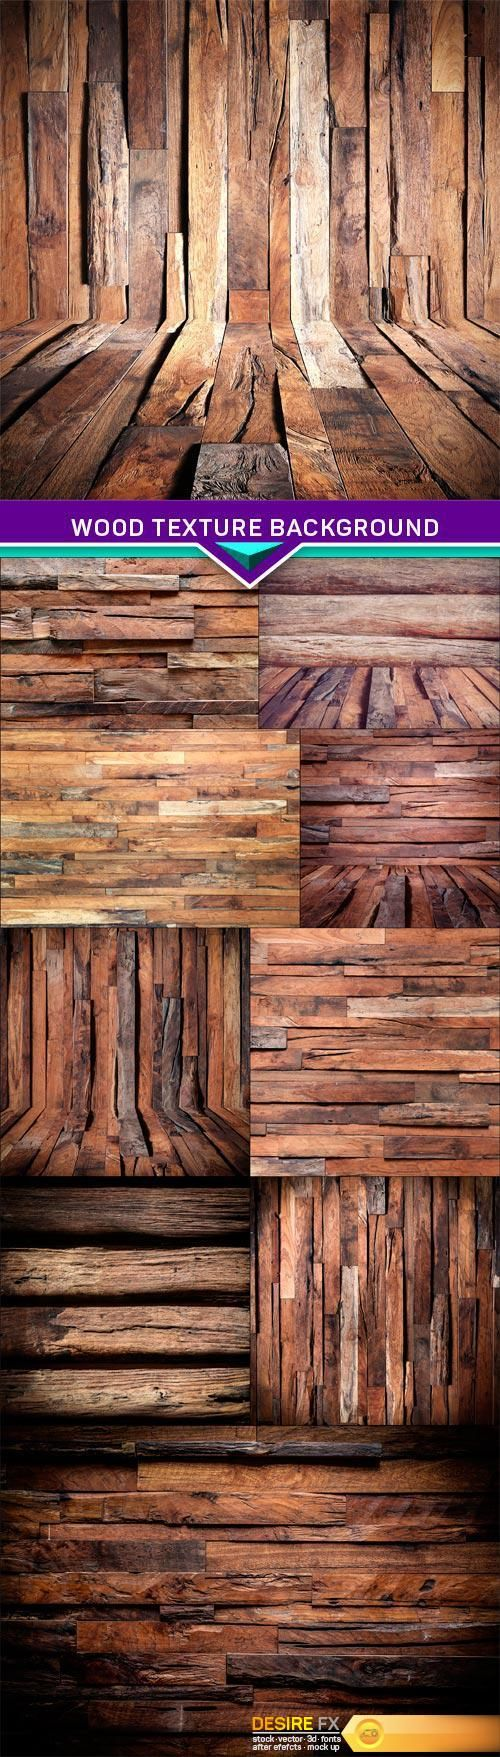 Wood texture background 10X JPEG  http://www.desirefx.me/wood-texture-background-10x-jpeg/